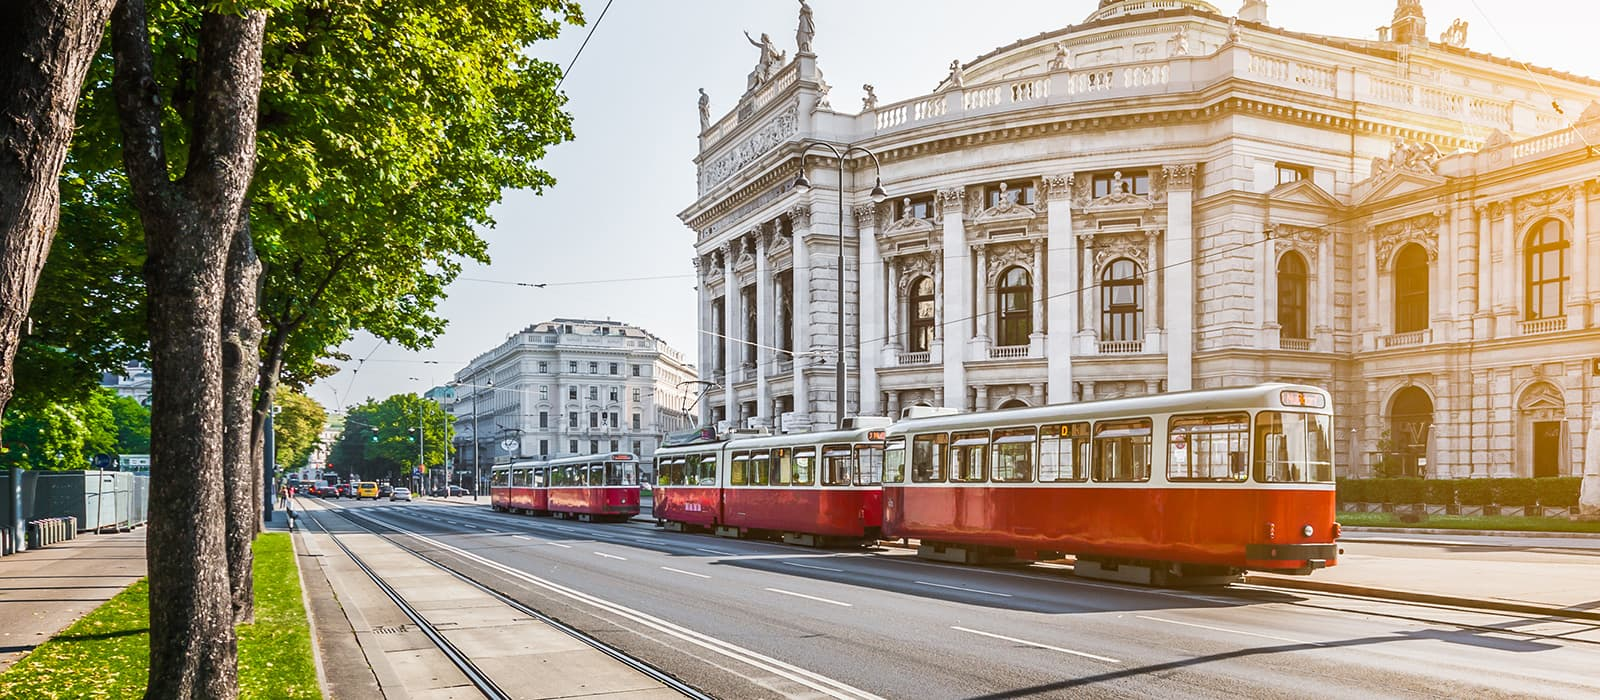 A tramway passes by the imperial theater in Vienna